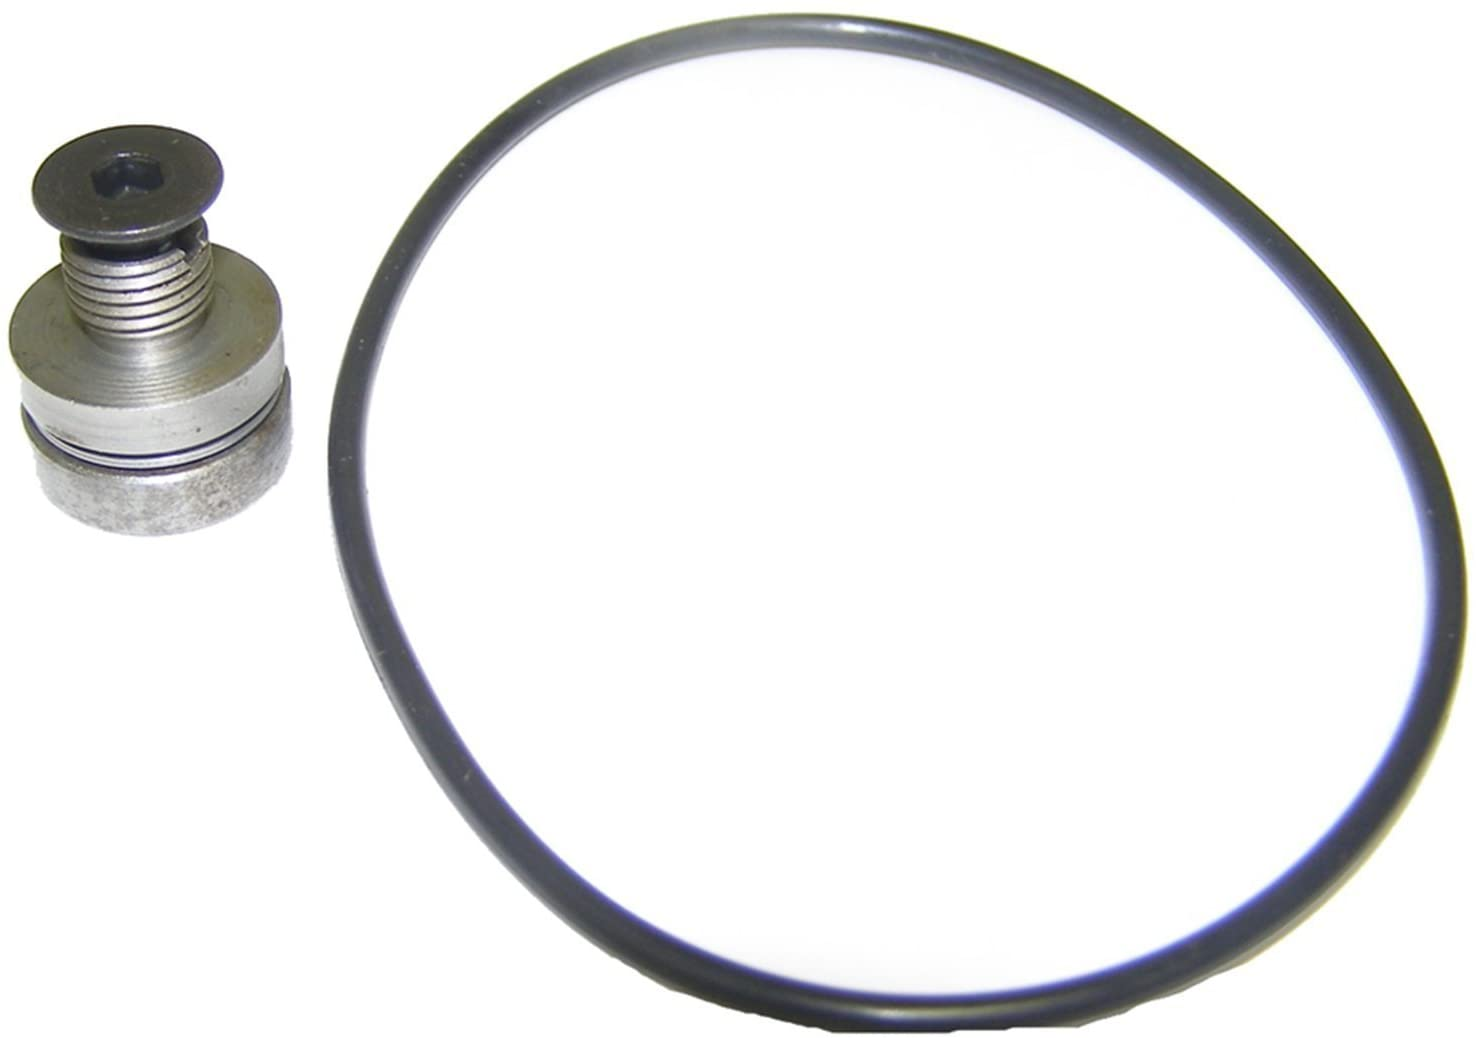 CLOYES 9-221D REPAIR PARTS FOR 2PC